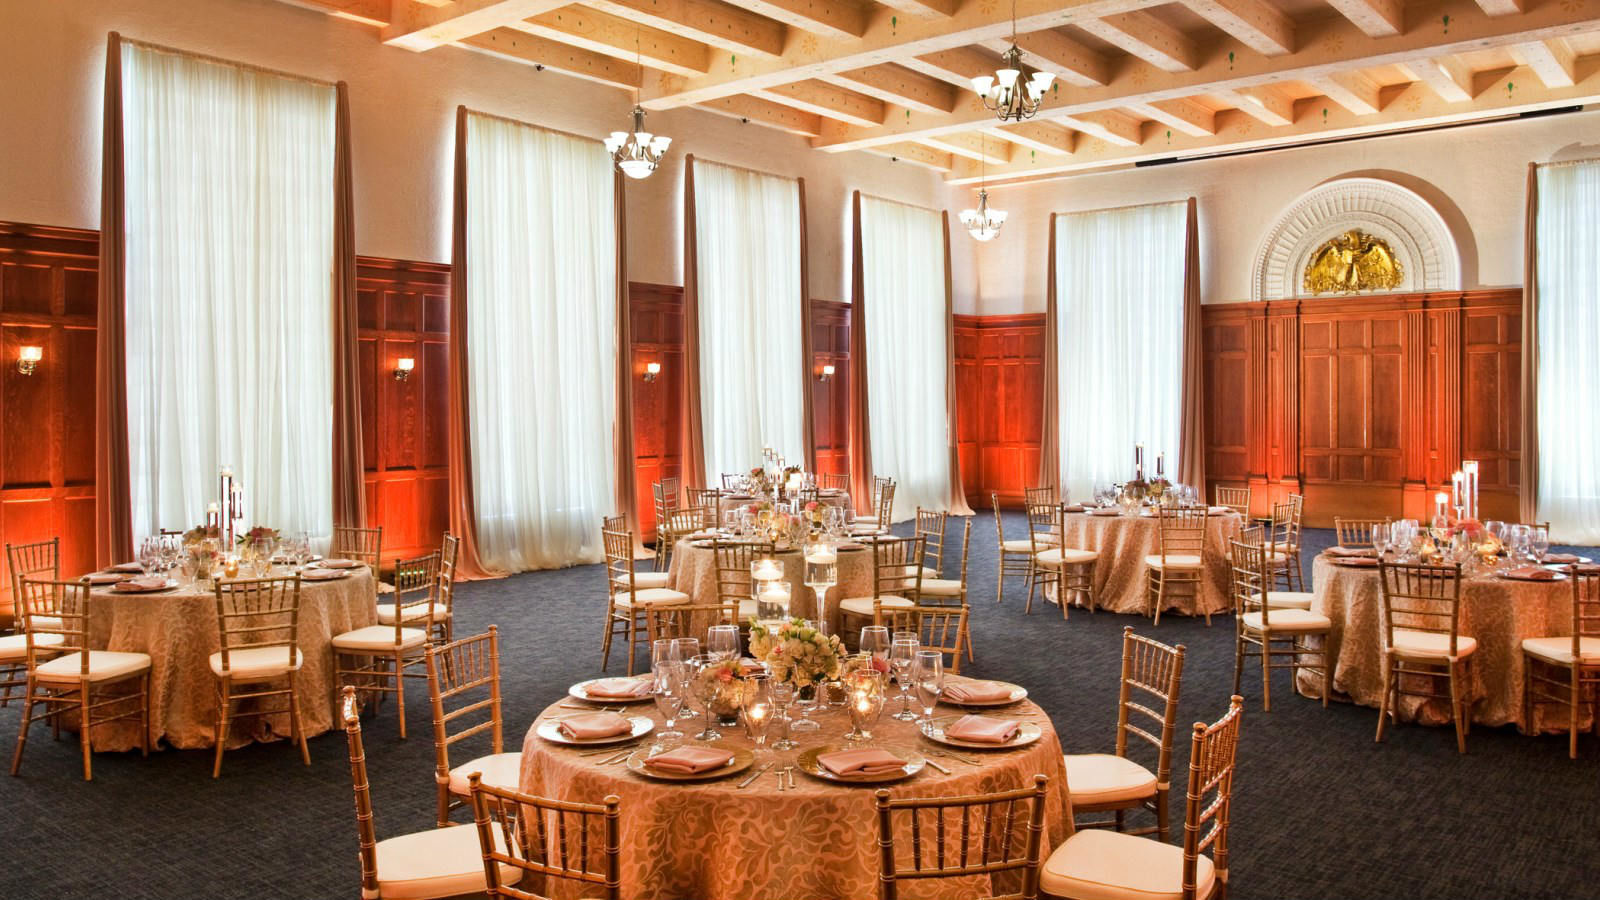 Wedding venues in tampa fl le mridien tampa courthouse ballroom le mridien tampa junglespirit Image collections